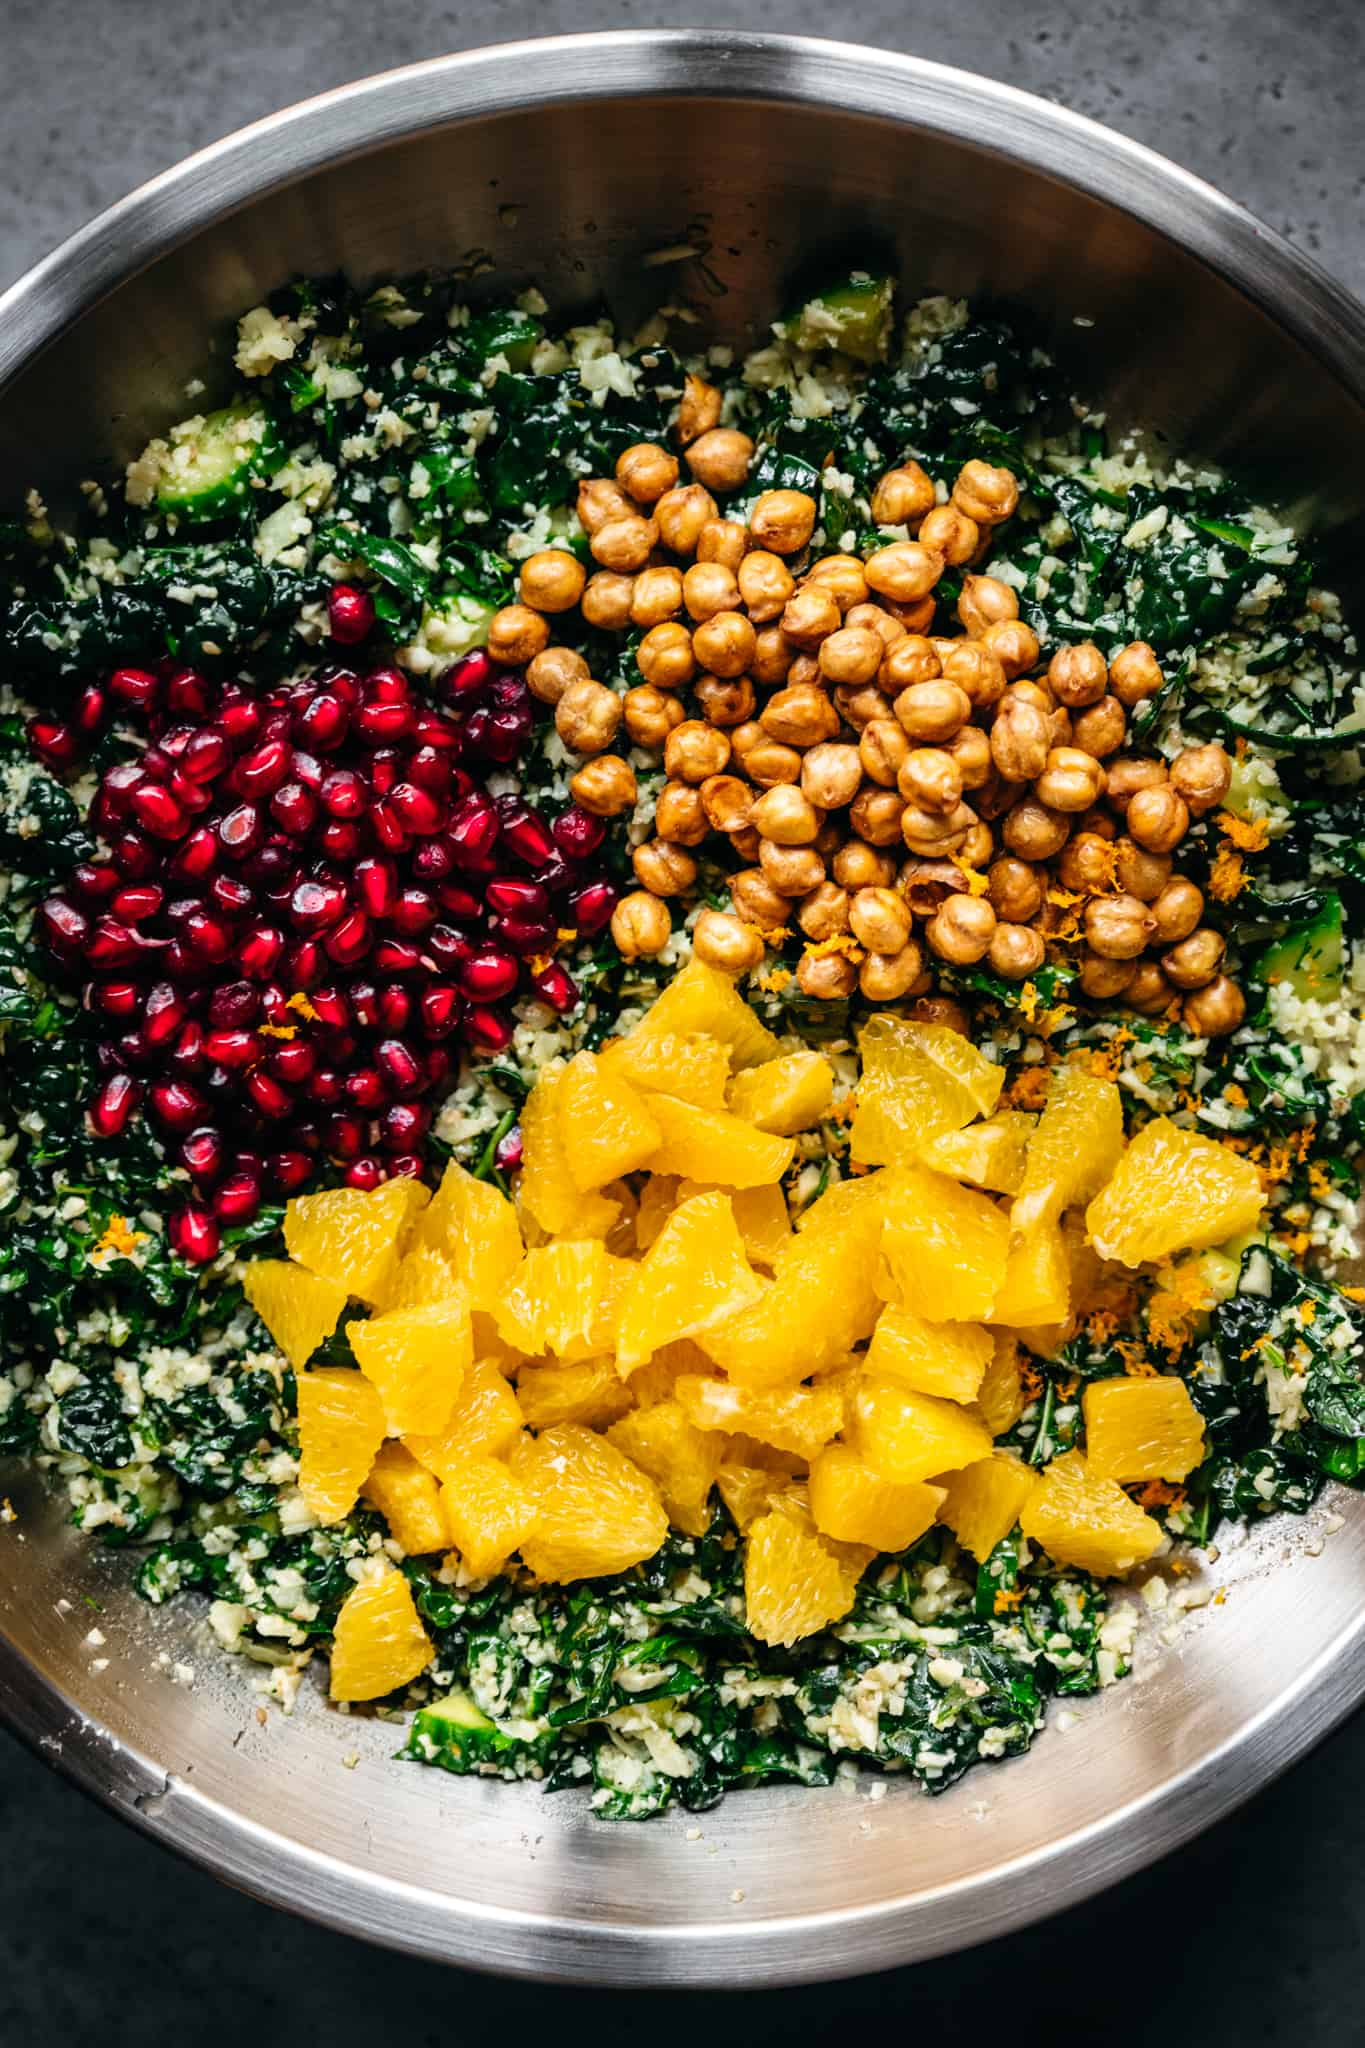 overhead view of cauliflower kale salad in mixing bowl with oranges, pomegranate and chickpeas